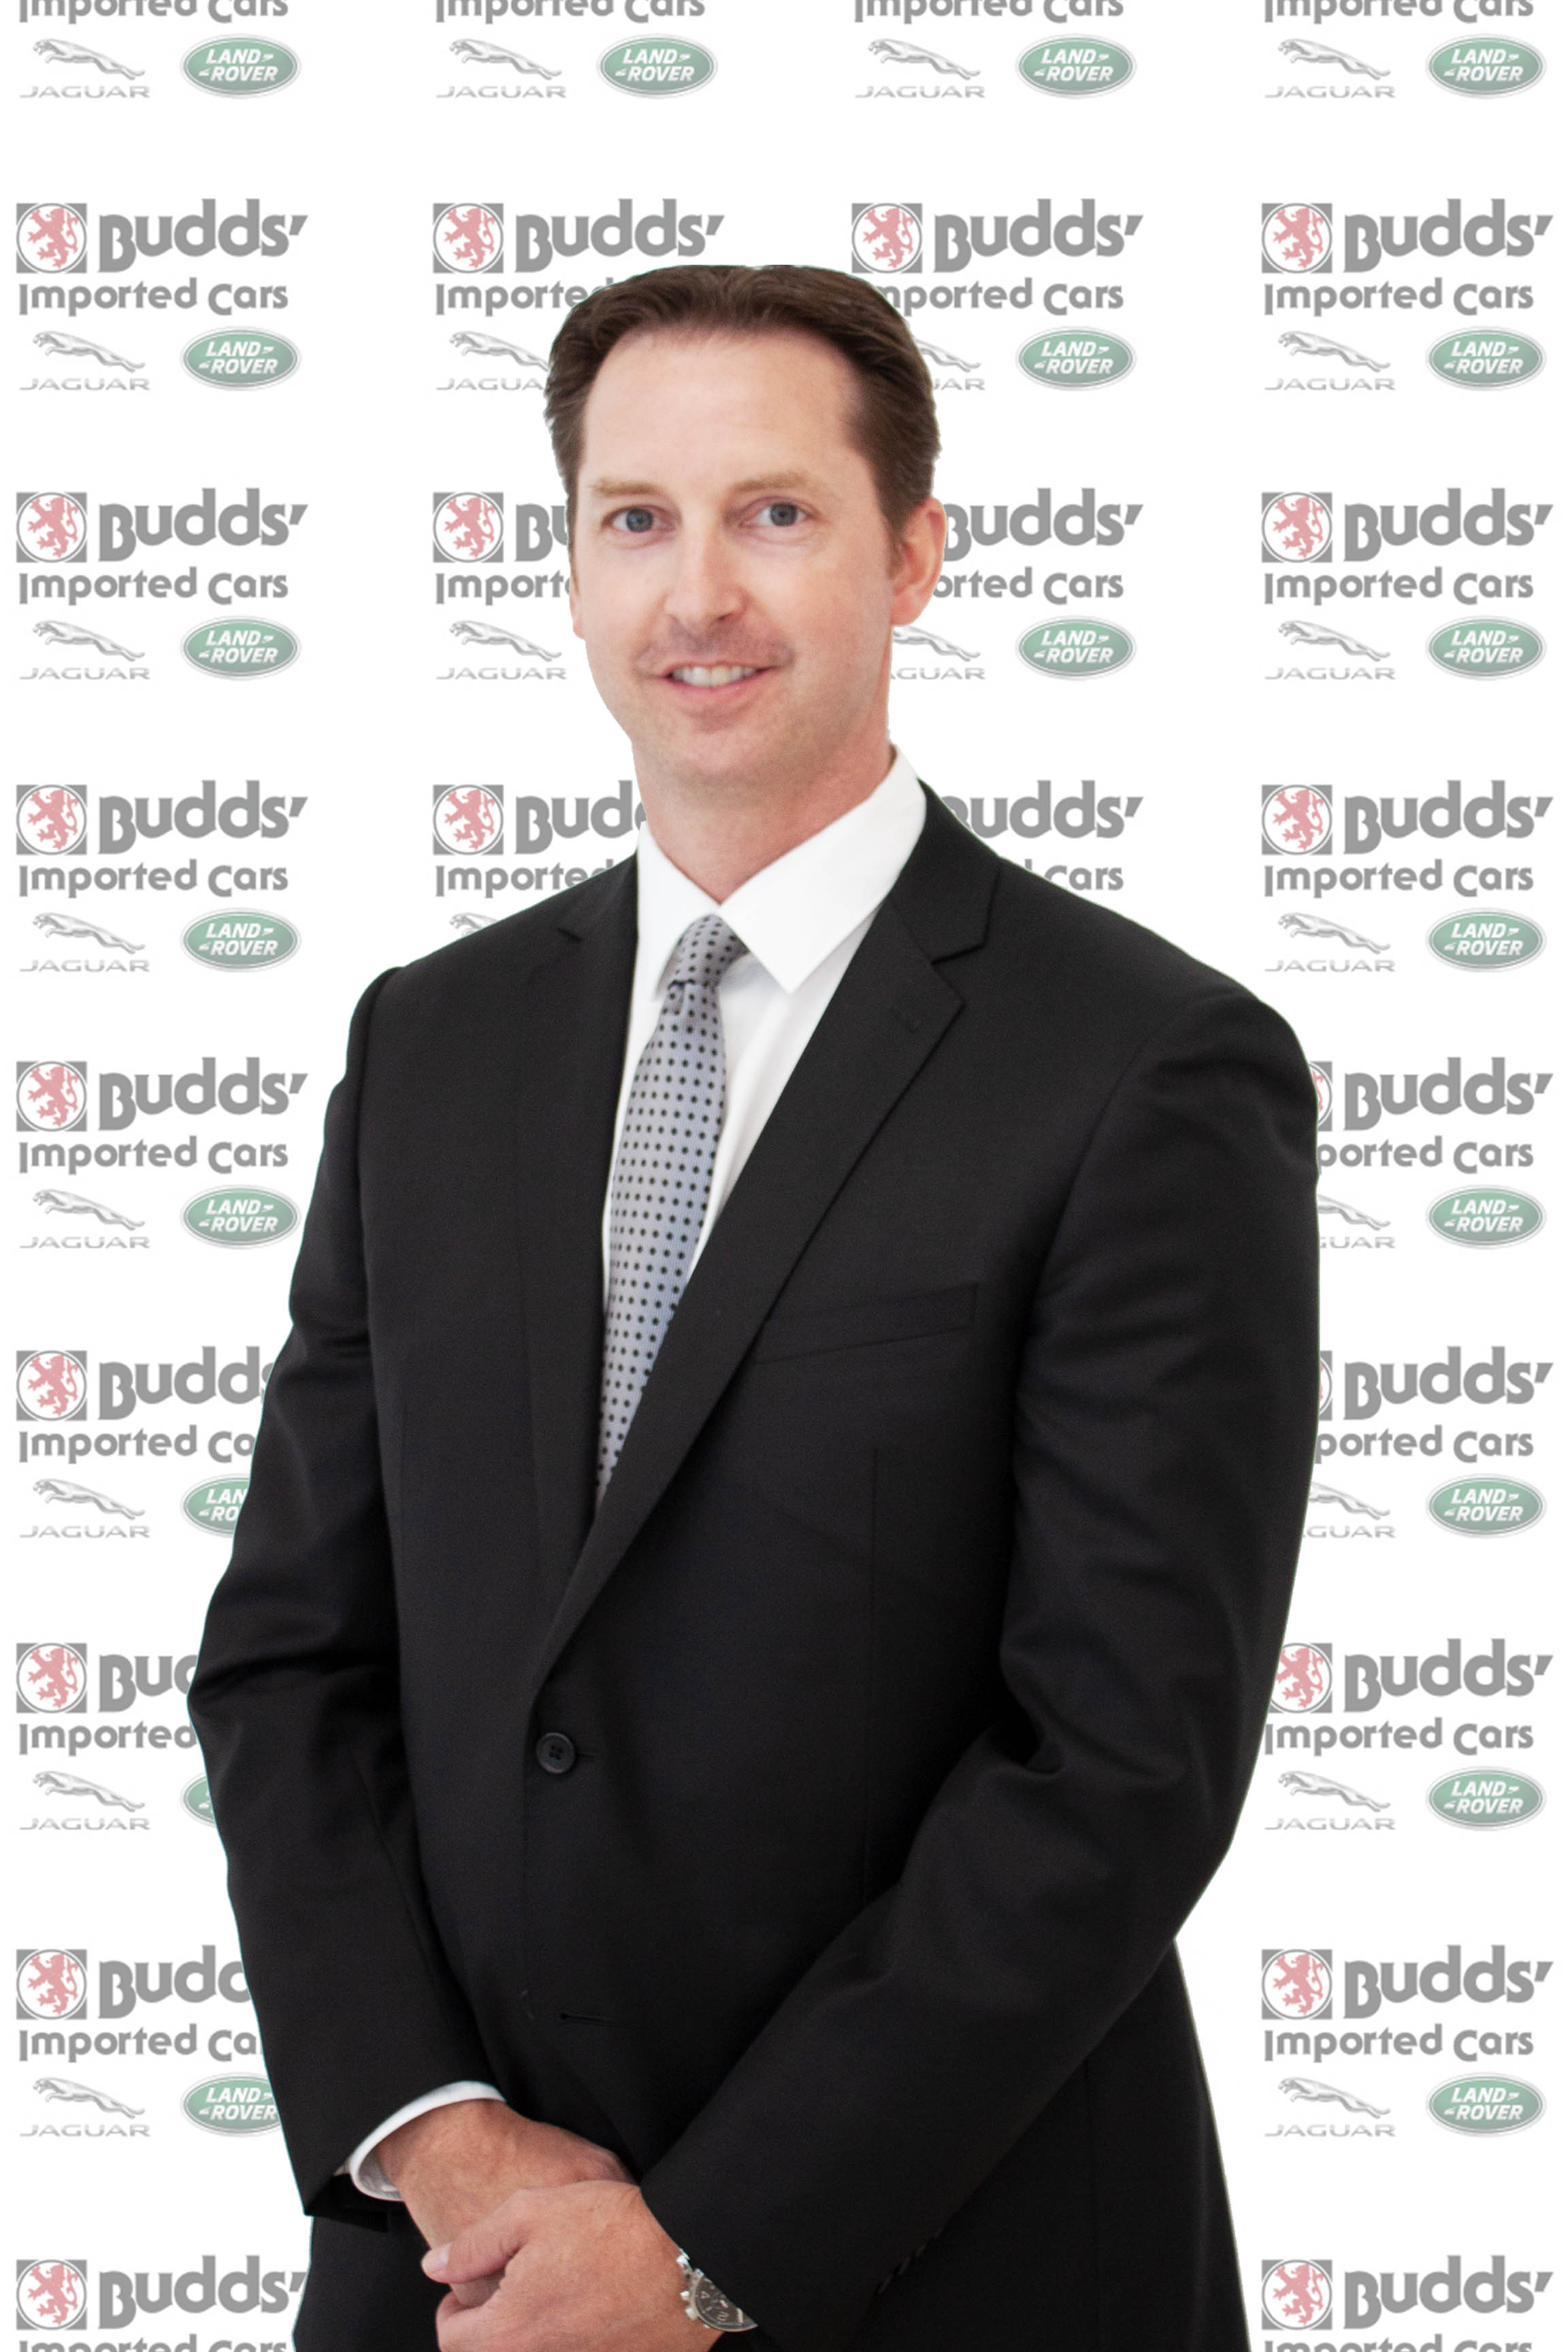 Nick Saley - Sales & Leasing Consultant